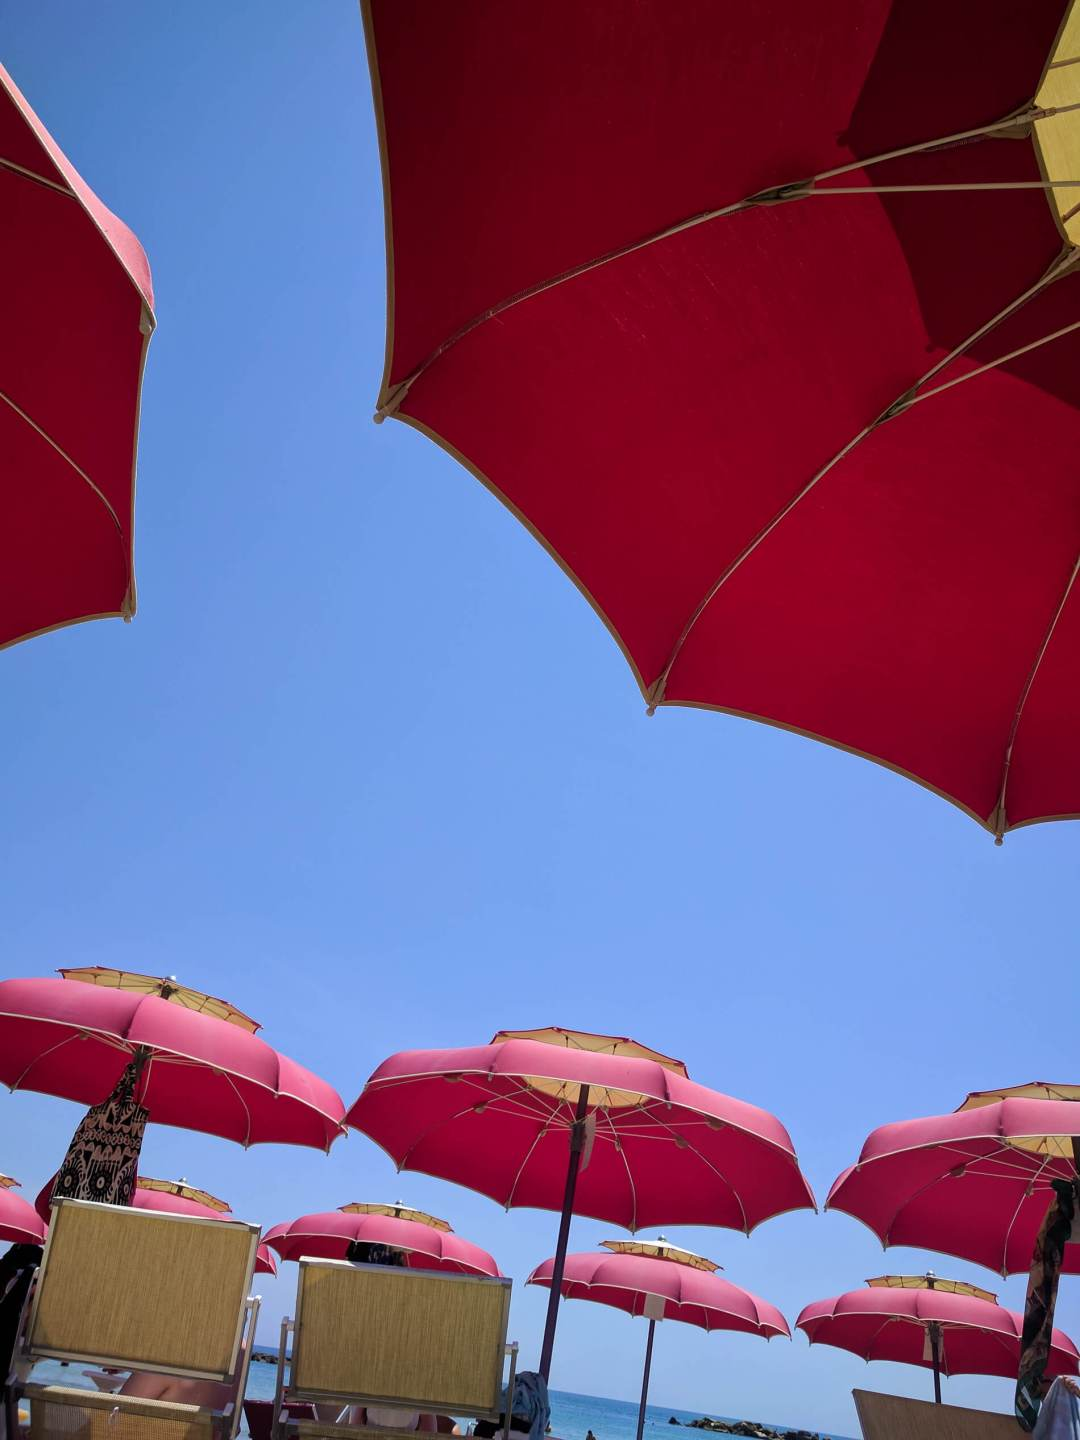 Red beach umbrellas and sky